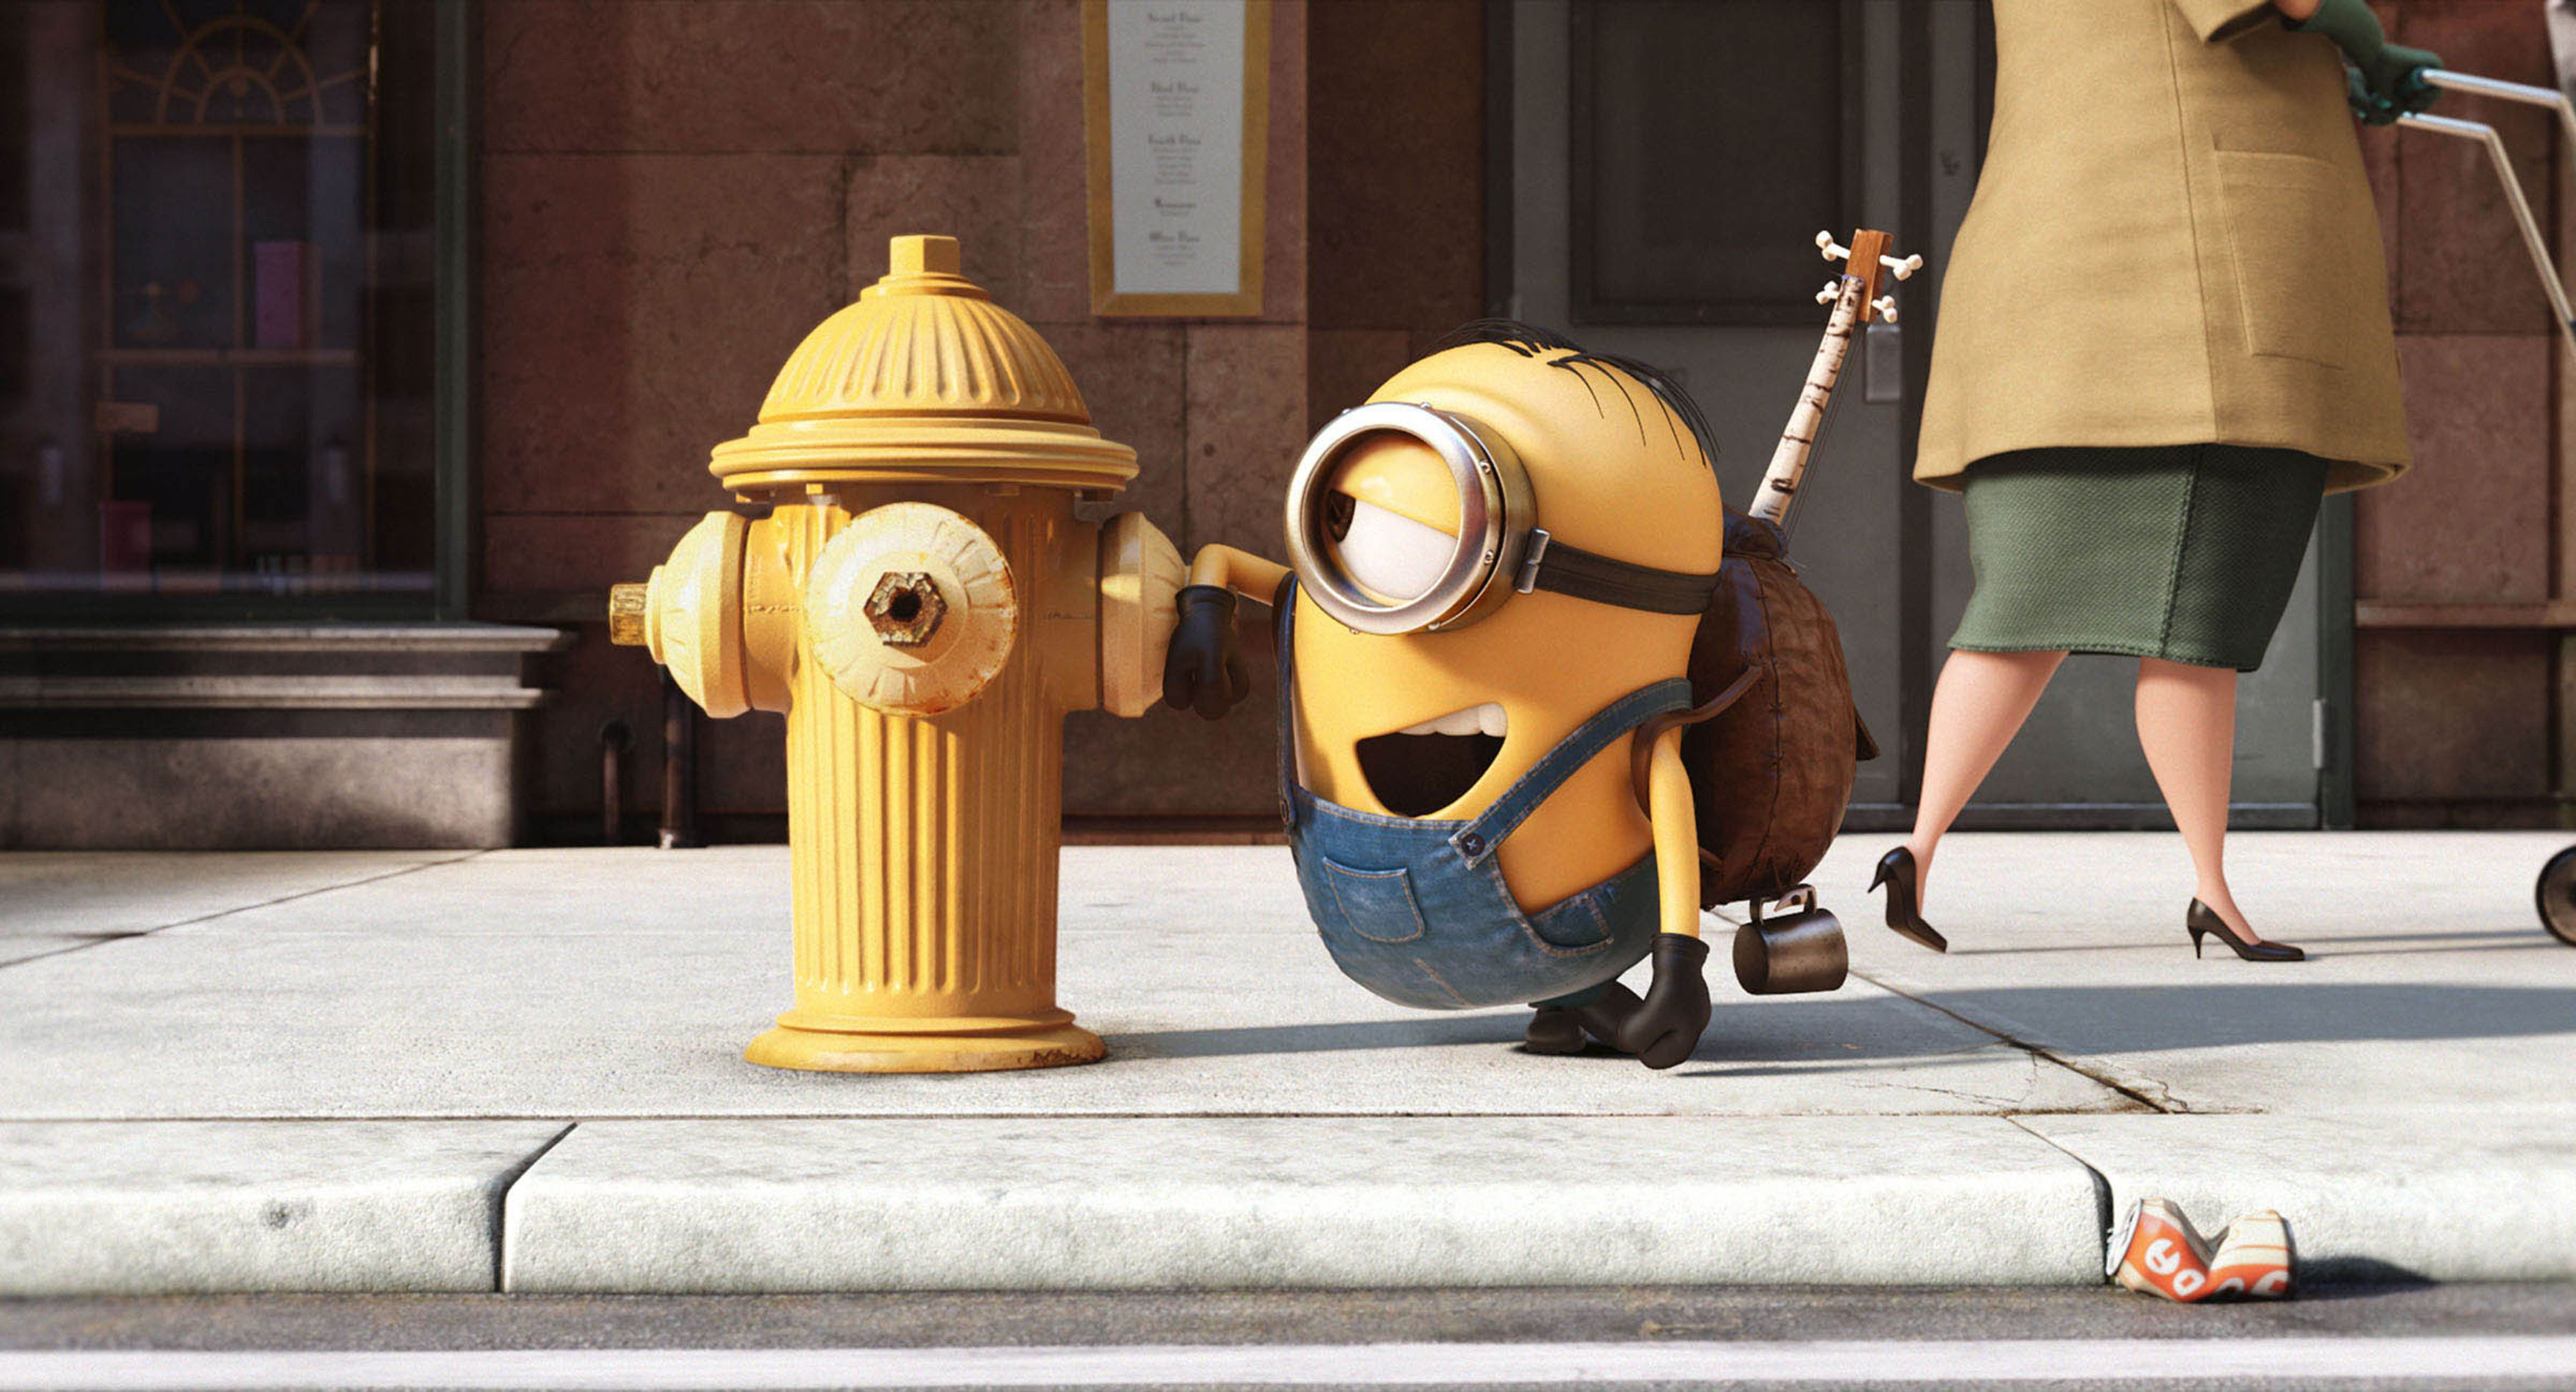 'MINIONS' WOULD HAVE THE POWER TO PLEASE EVERYBODY, IF IT BOTHERED TO TRY